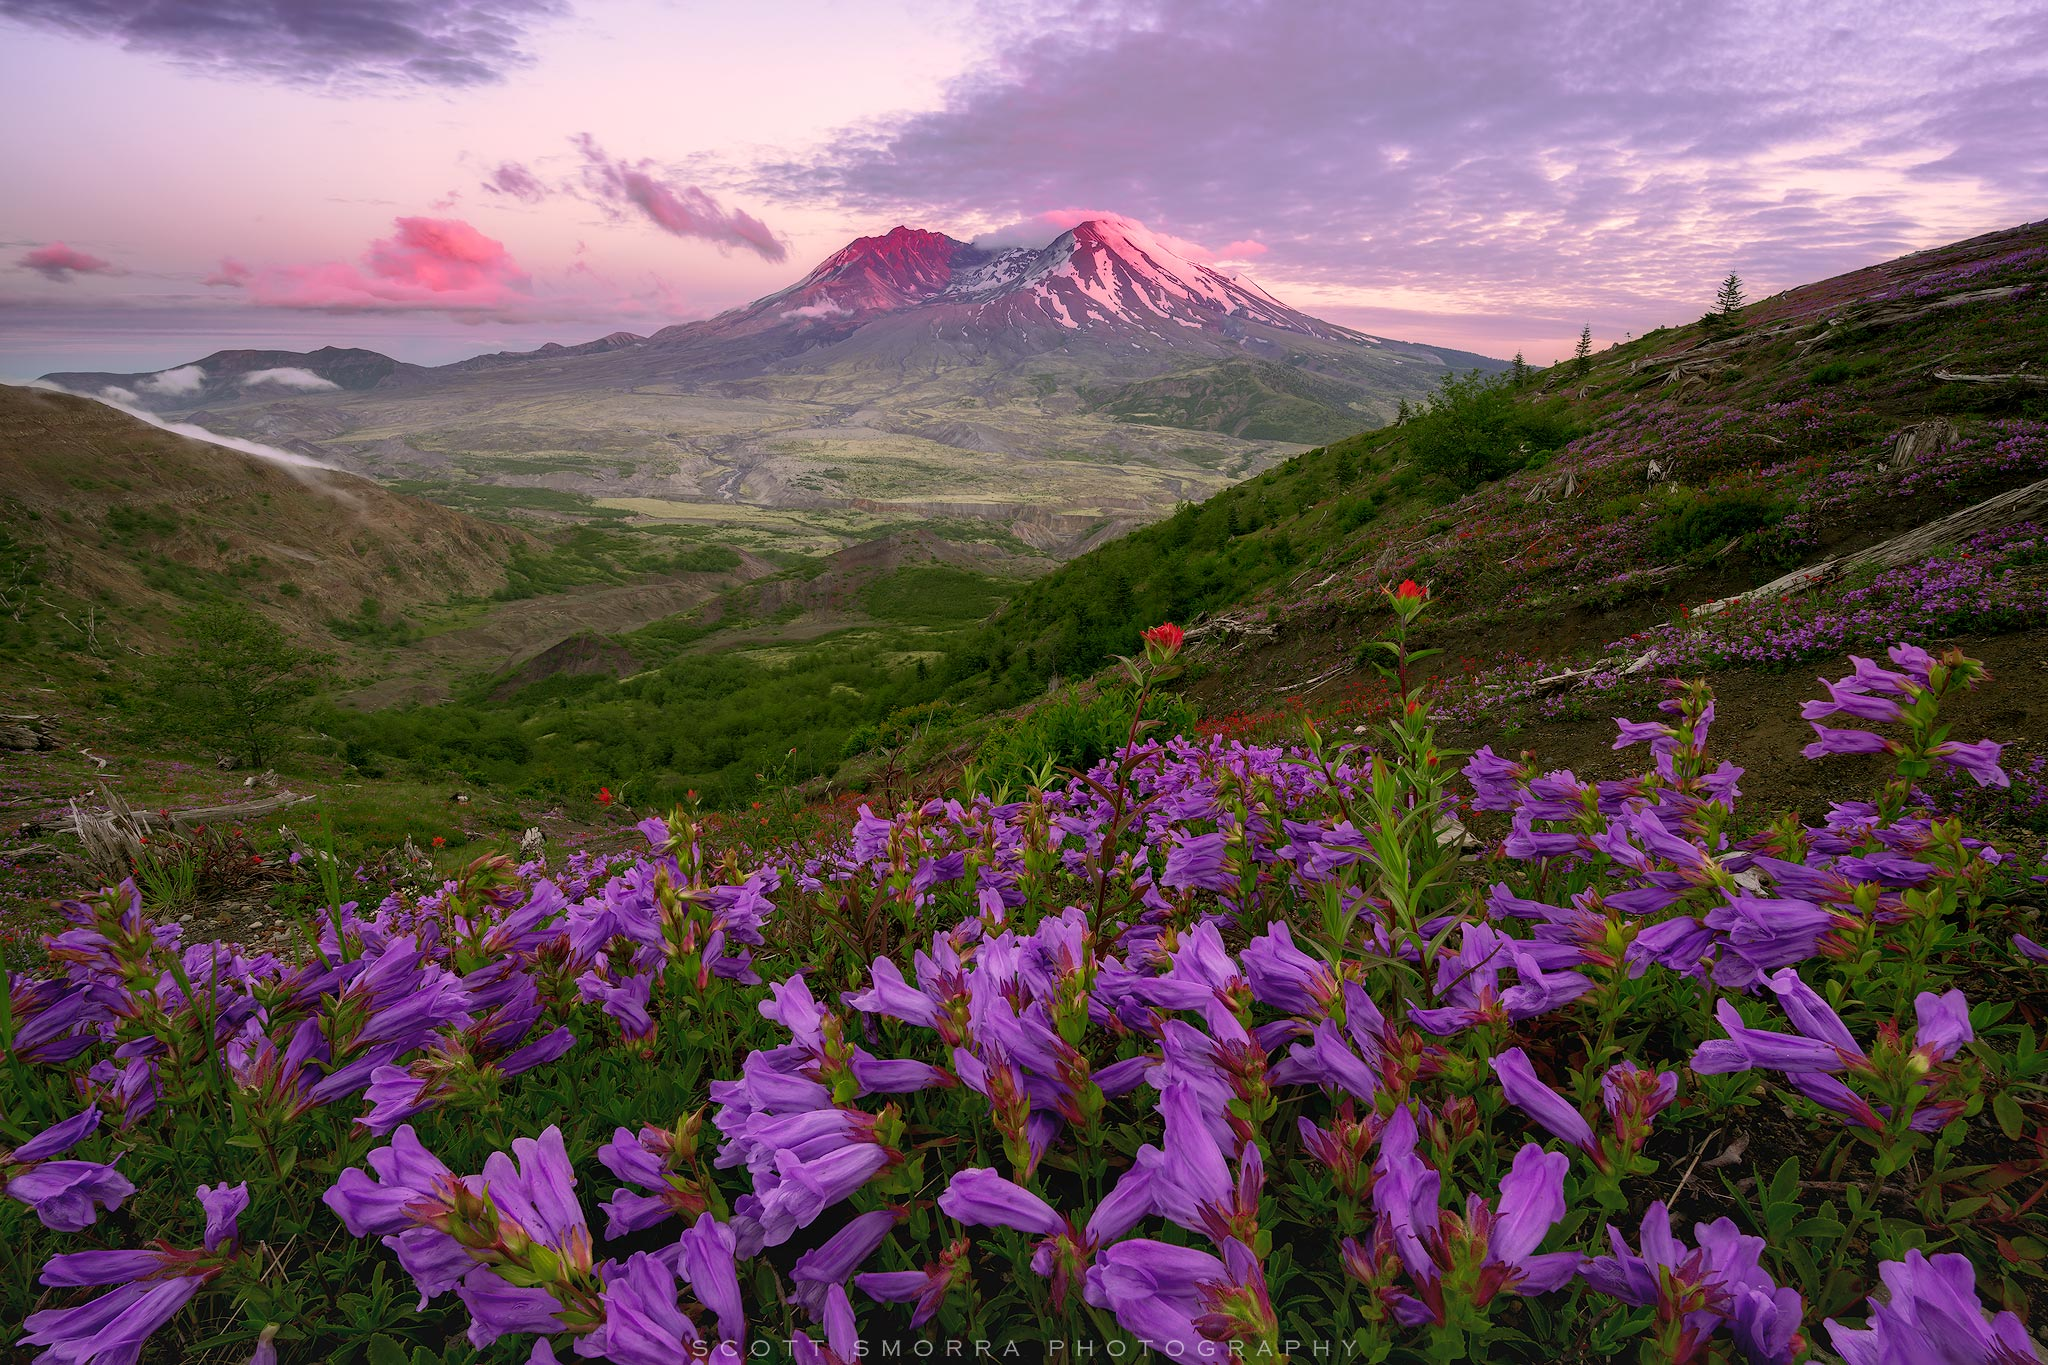 Fine Art Limited Edition of 100 - Summer wildflowers and sunset alpenglow at Mt St Helens National Volcanic Monument. On May...